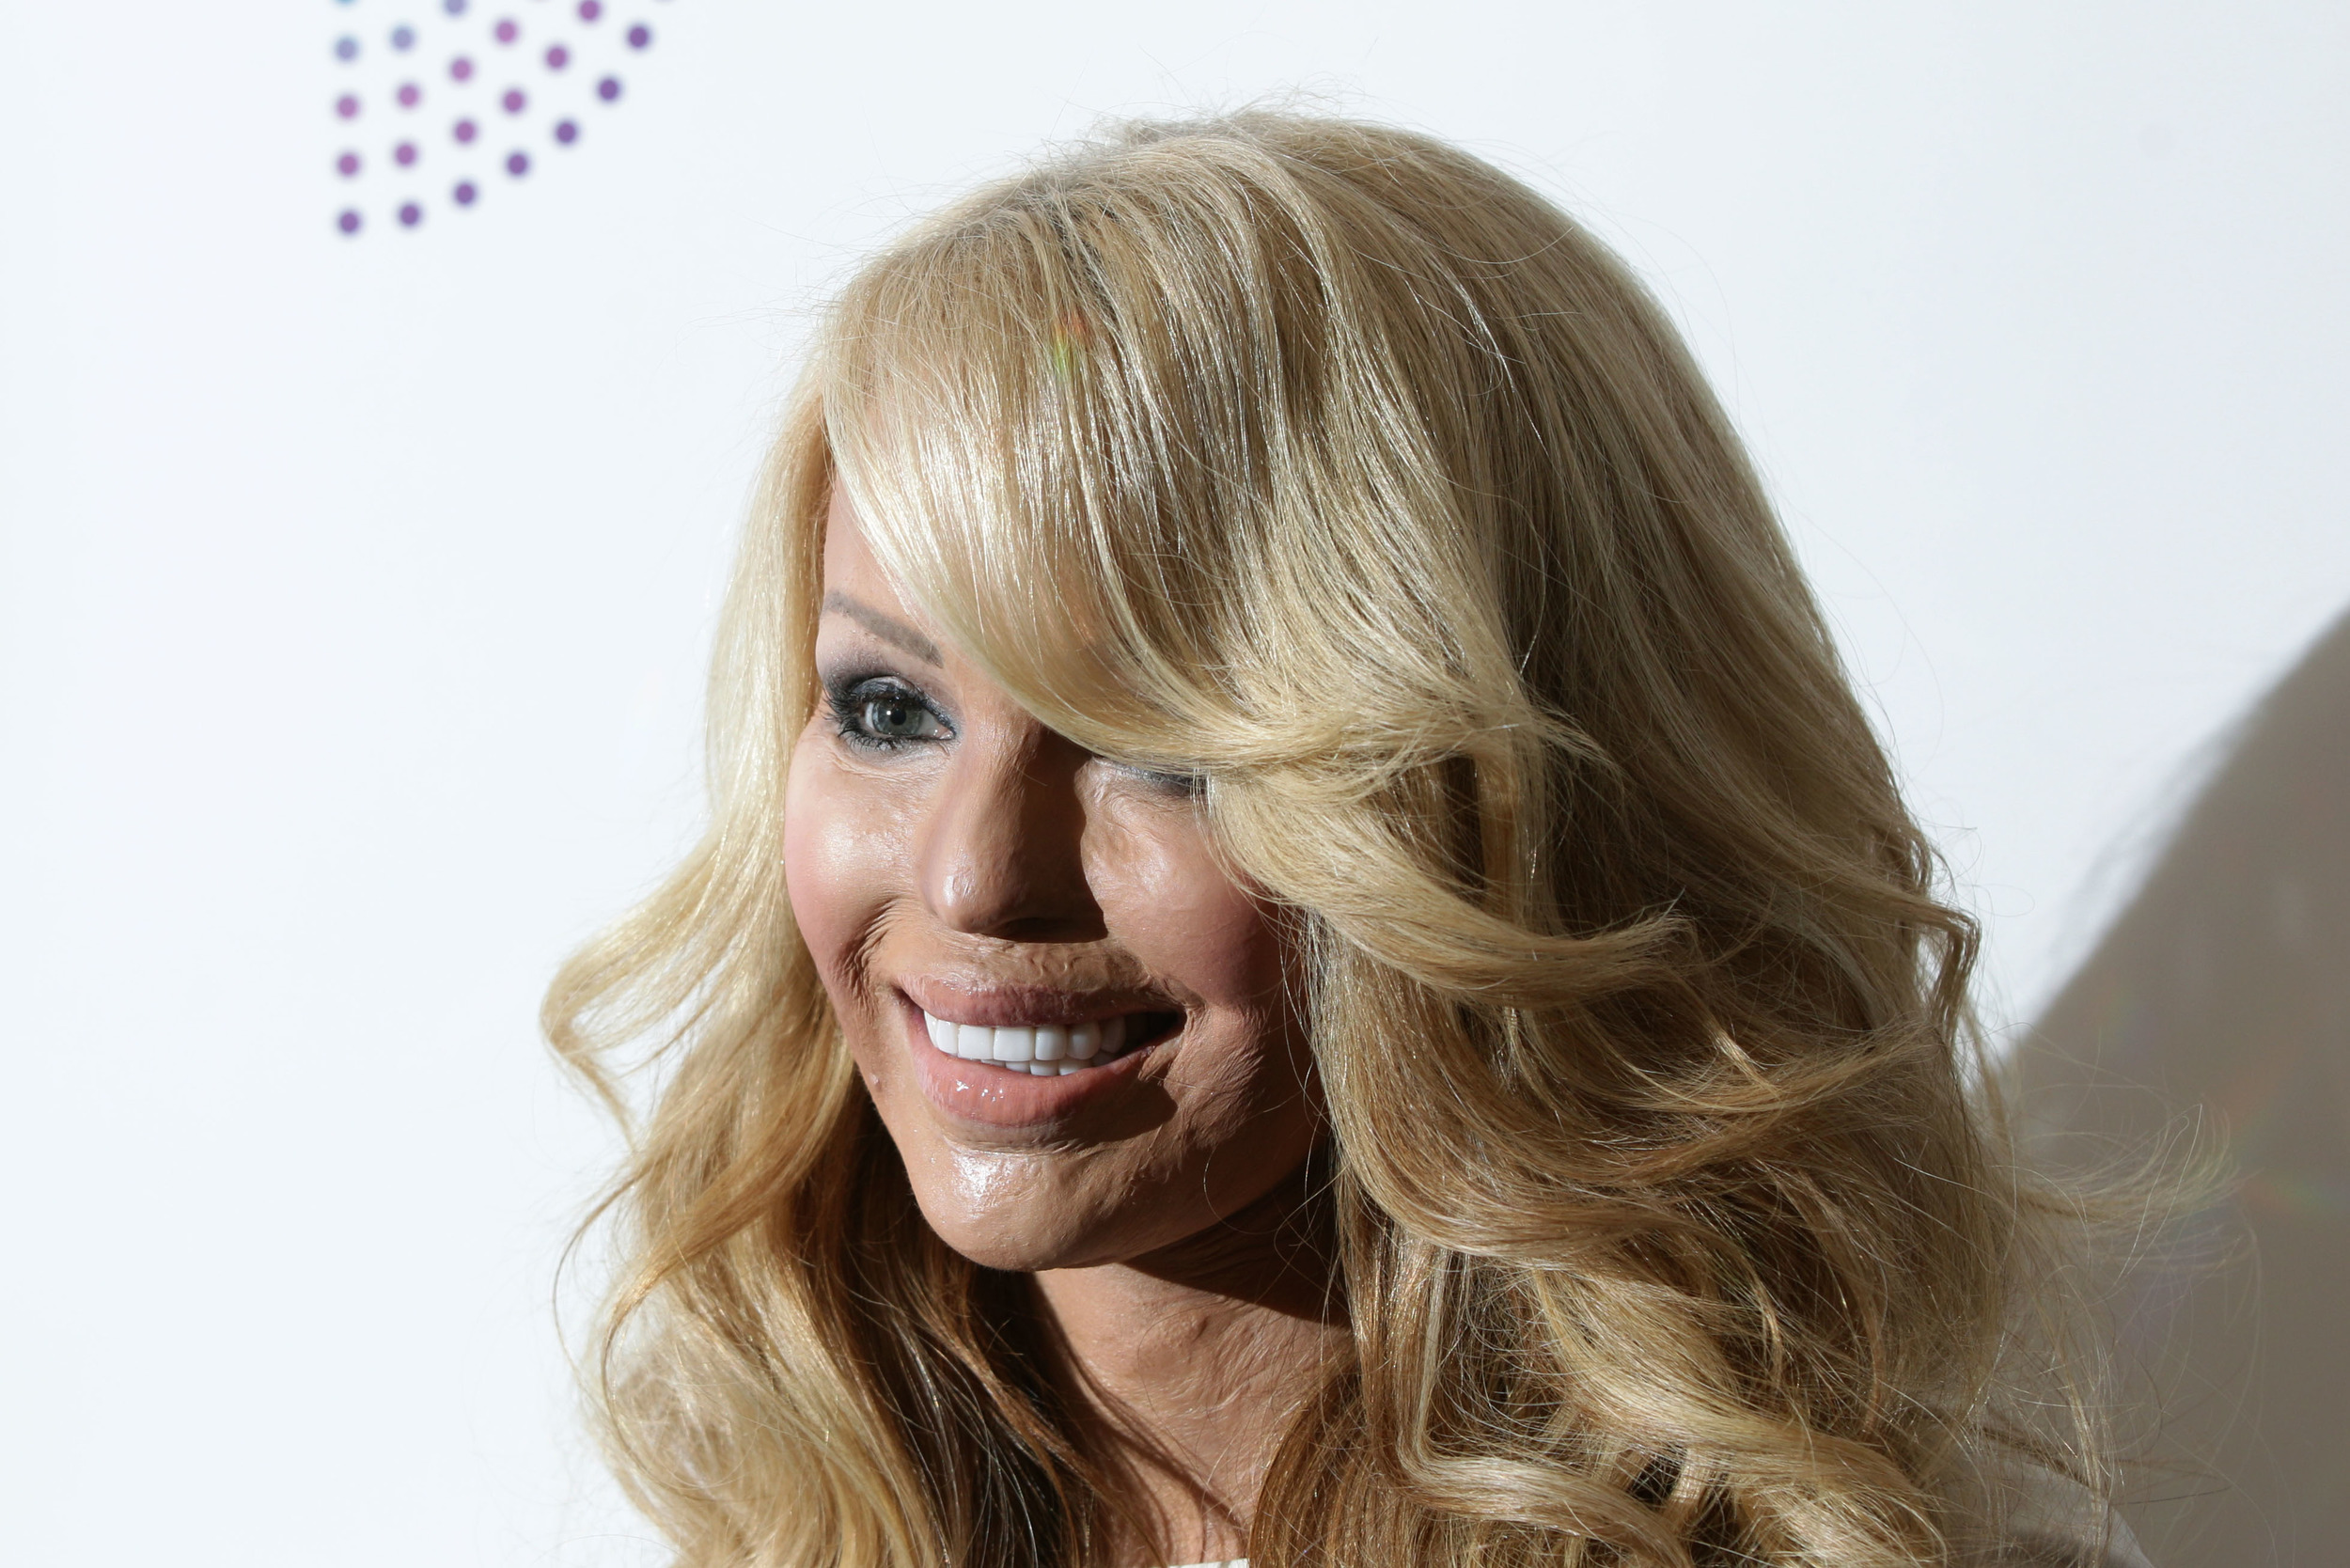 Katie Piper Now March: katie piper - who